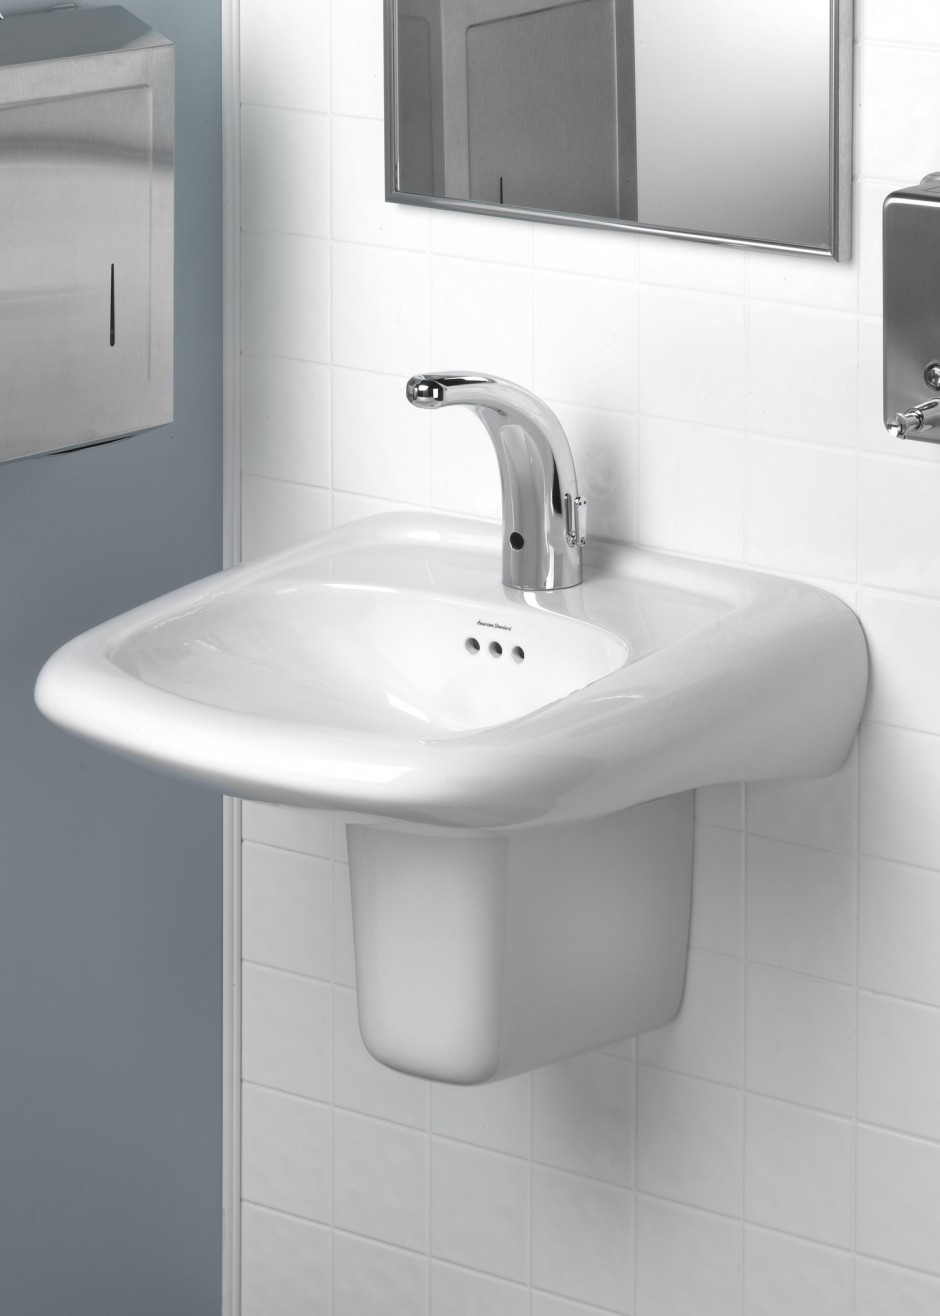 Sink Distributors Universal Design Wall Hung Sink Ideal For Demanding Grohe Essence 32137 000